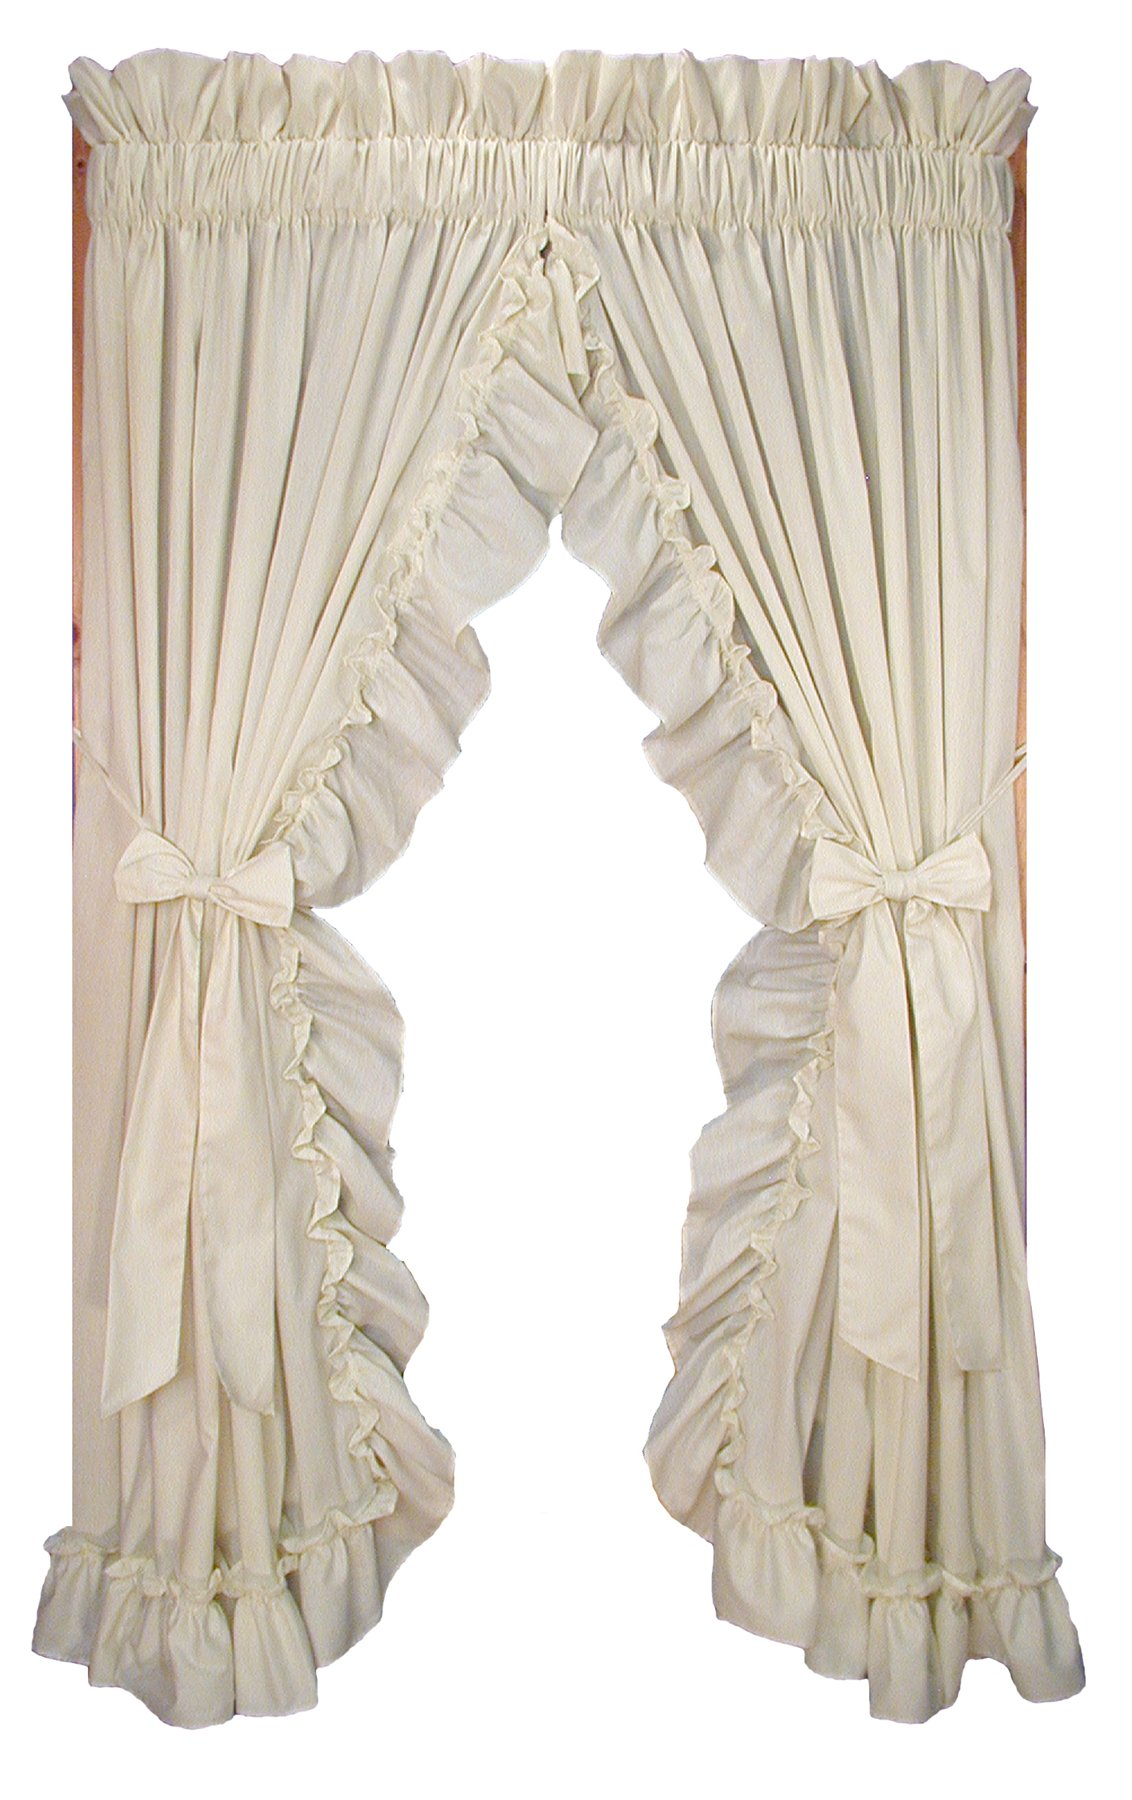 Bon Stephanie Country Style Ruffle Priscilla Curtains Pair 86 Inch By 84 Inch